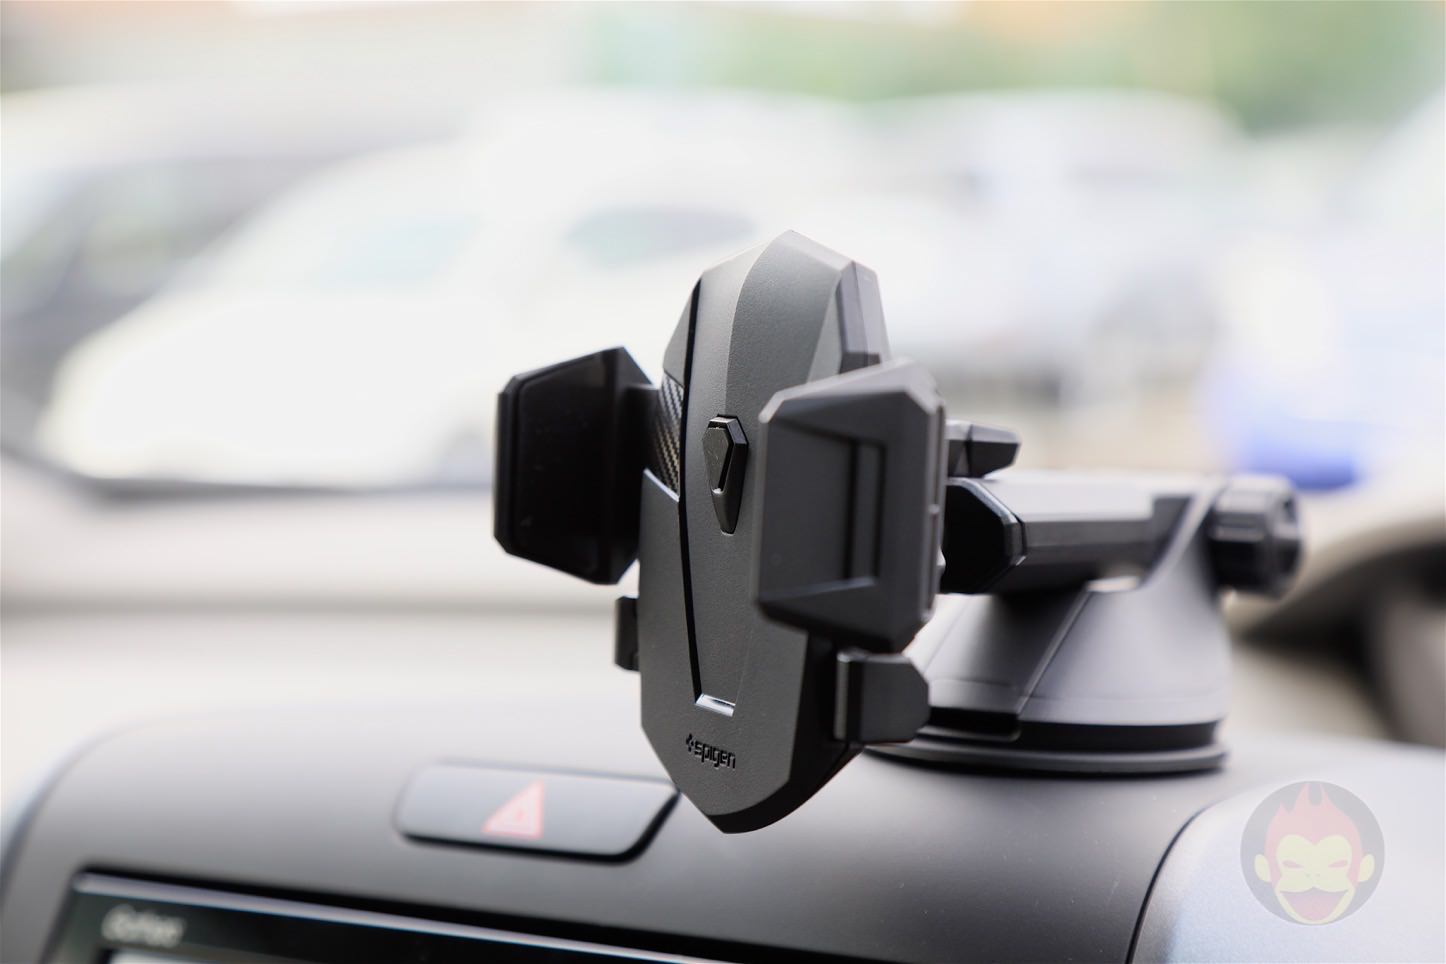 Spigen-AP12T-Car-Mount-19.jpg